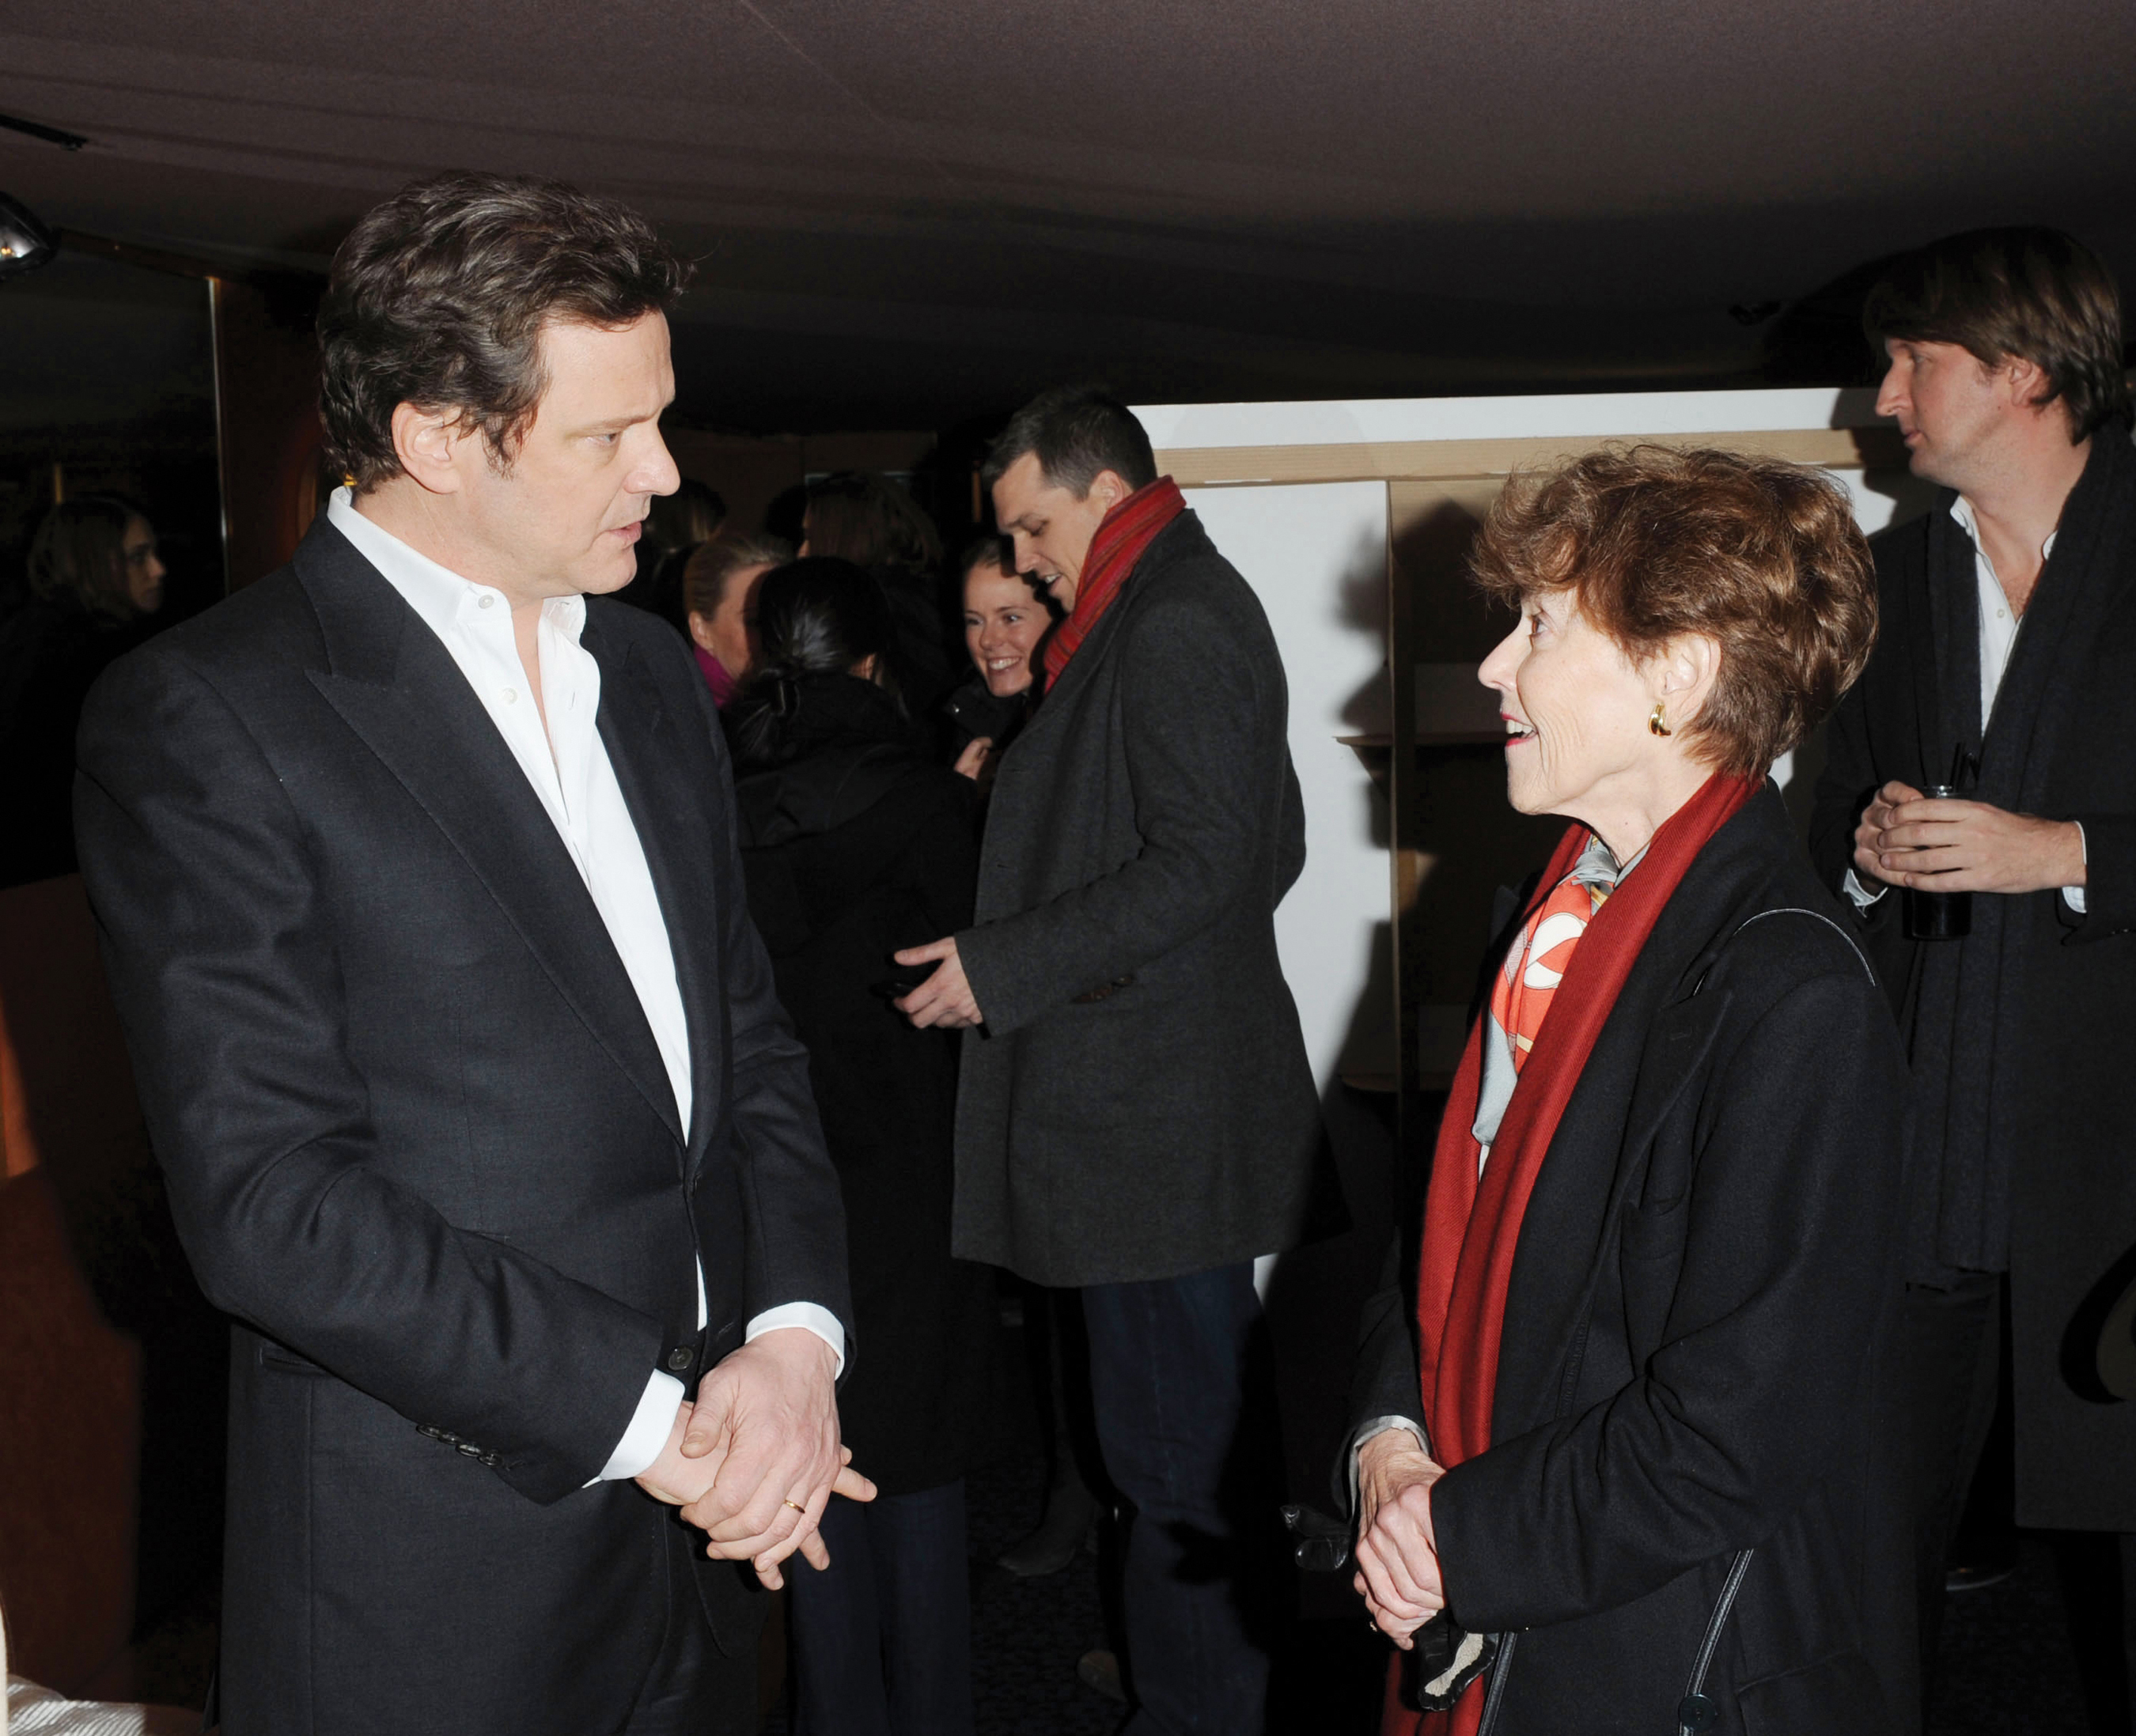 Media resources stuttering foundation a nonprofit organization download picture of stuttering foundation president jane fraser with actor colin firth at a fund raising event in london geenschuldenfo Images